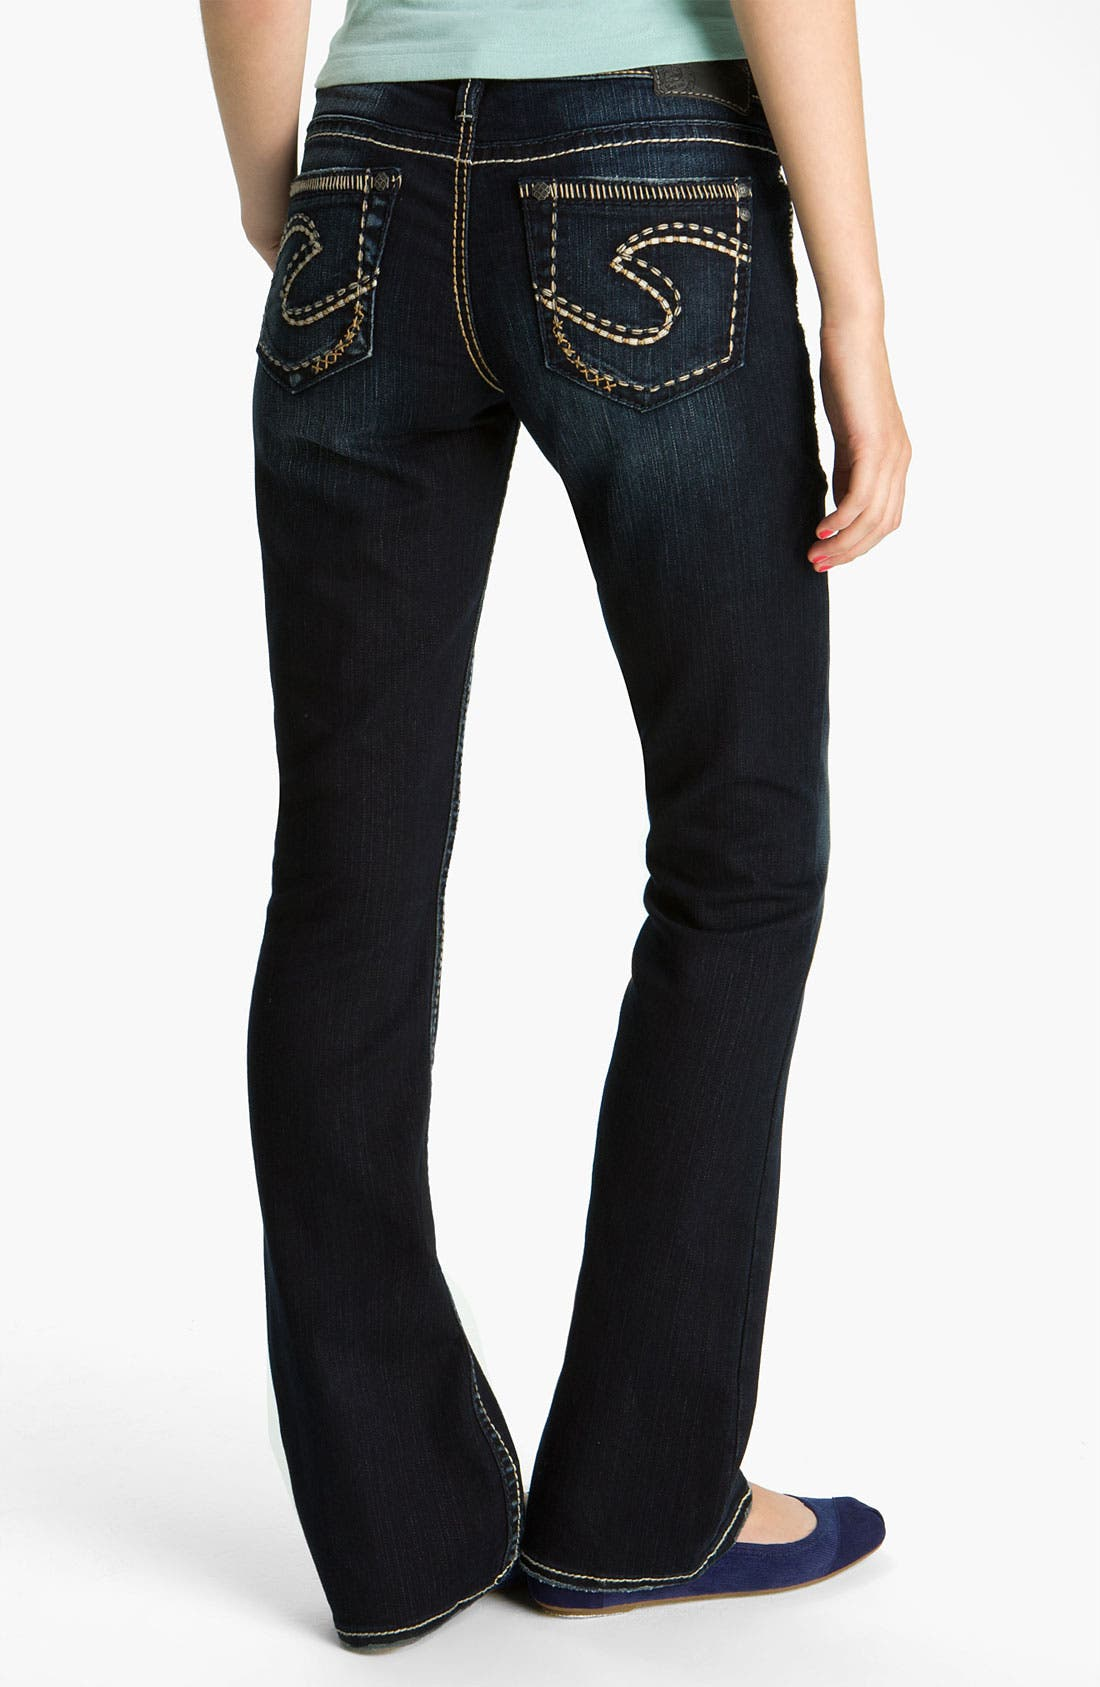 Alternate Image 1 Selected - Silver Jeans Co. 'Aiko' Bootcut Jeans (Juniors)